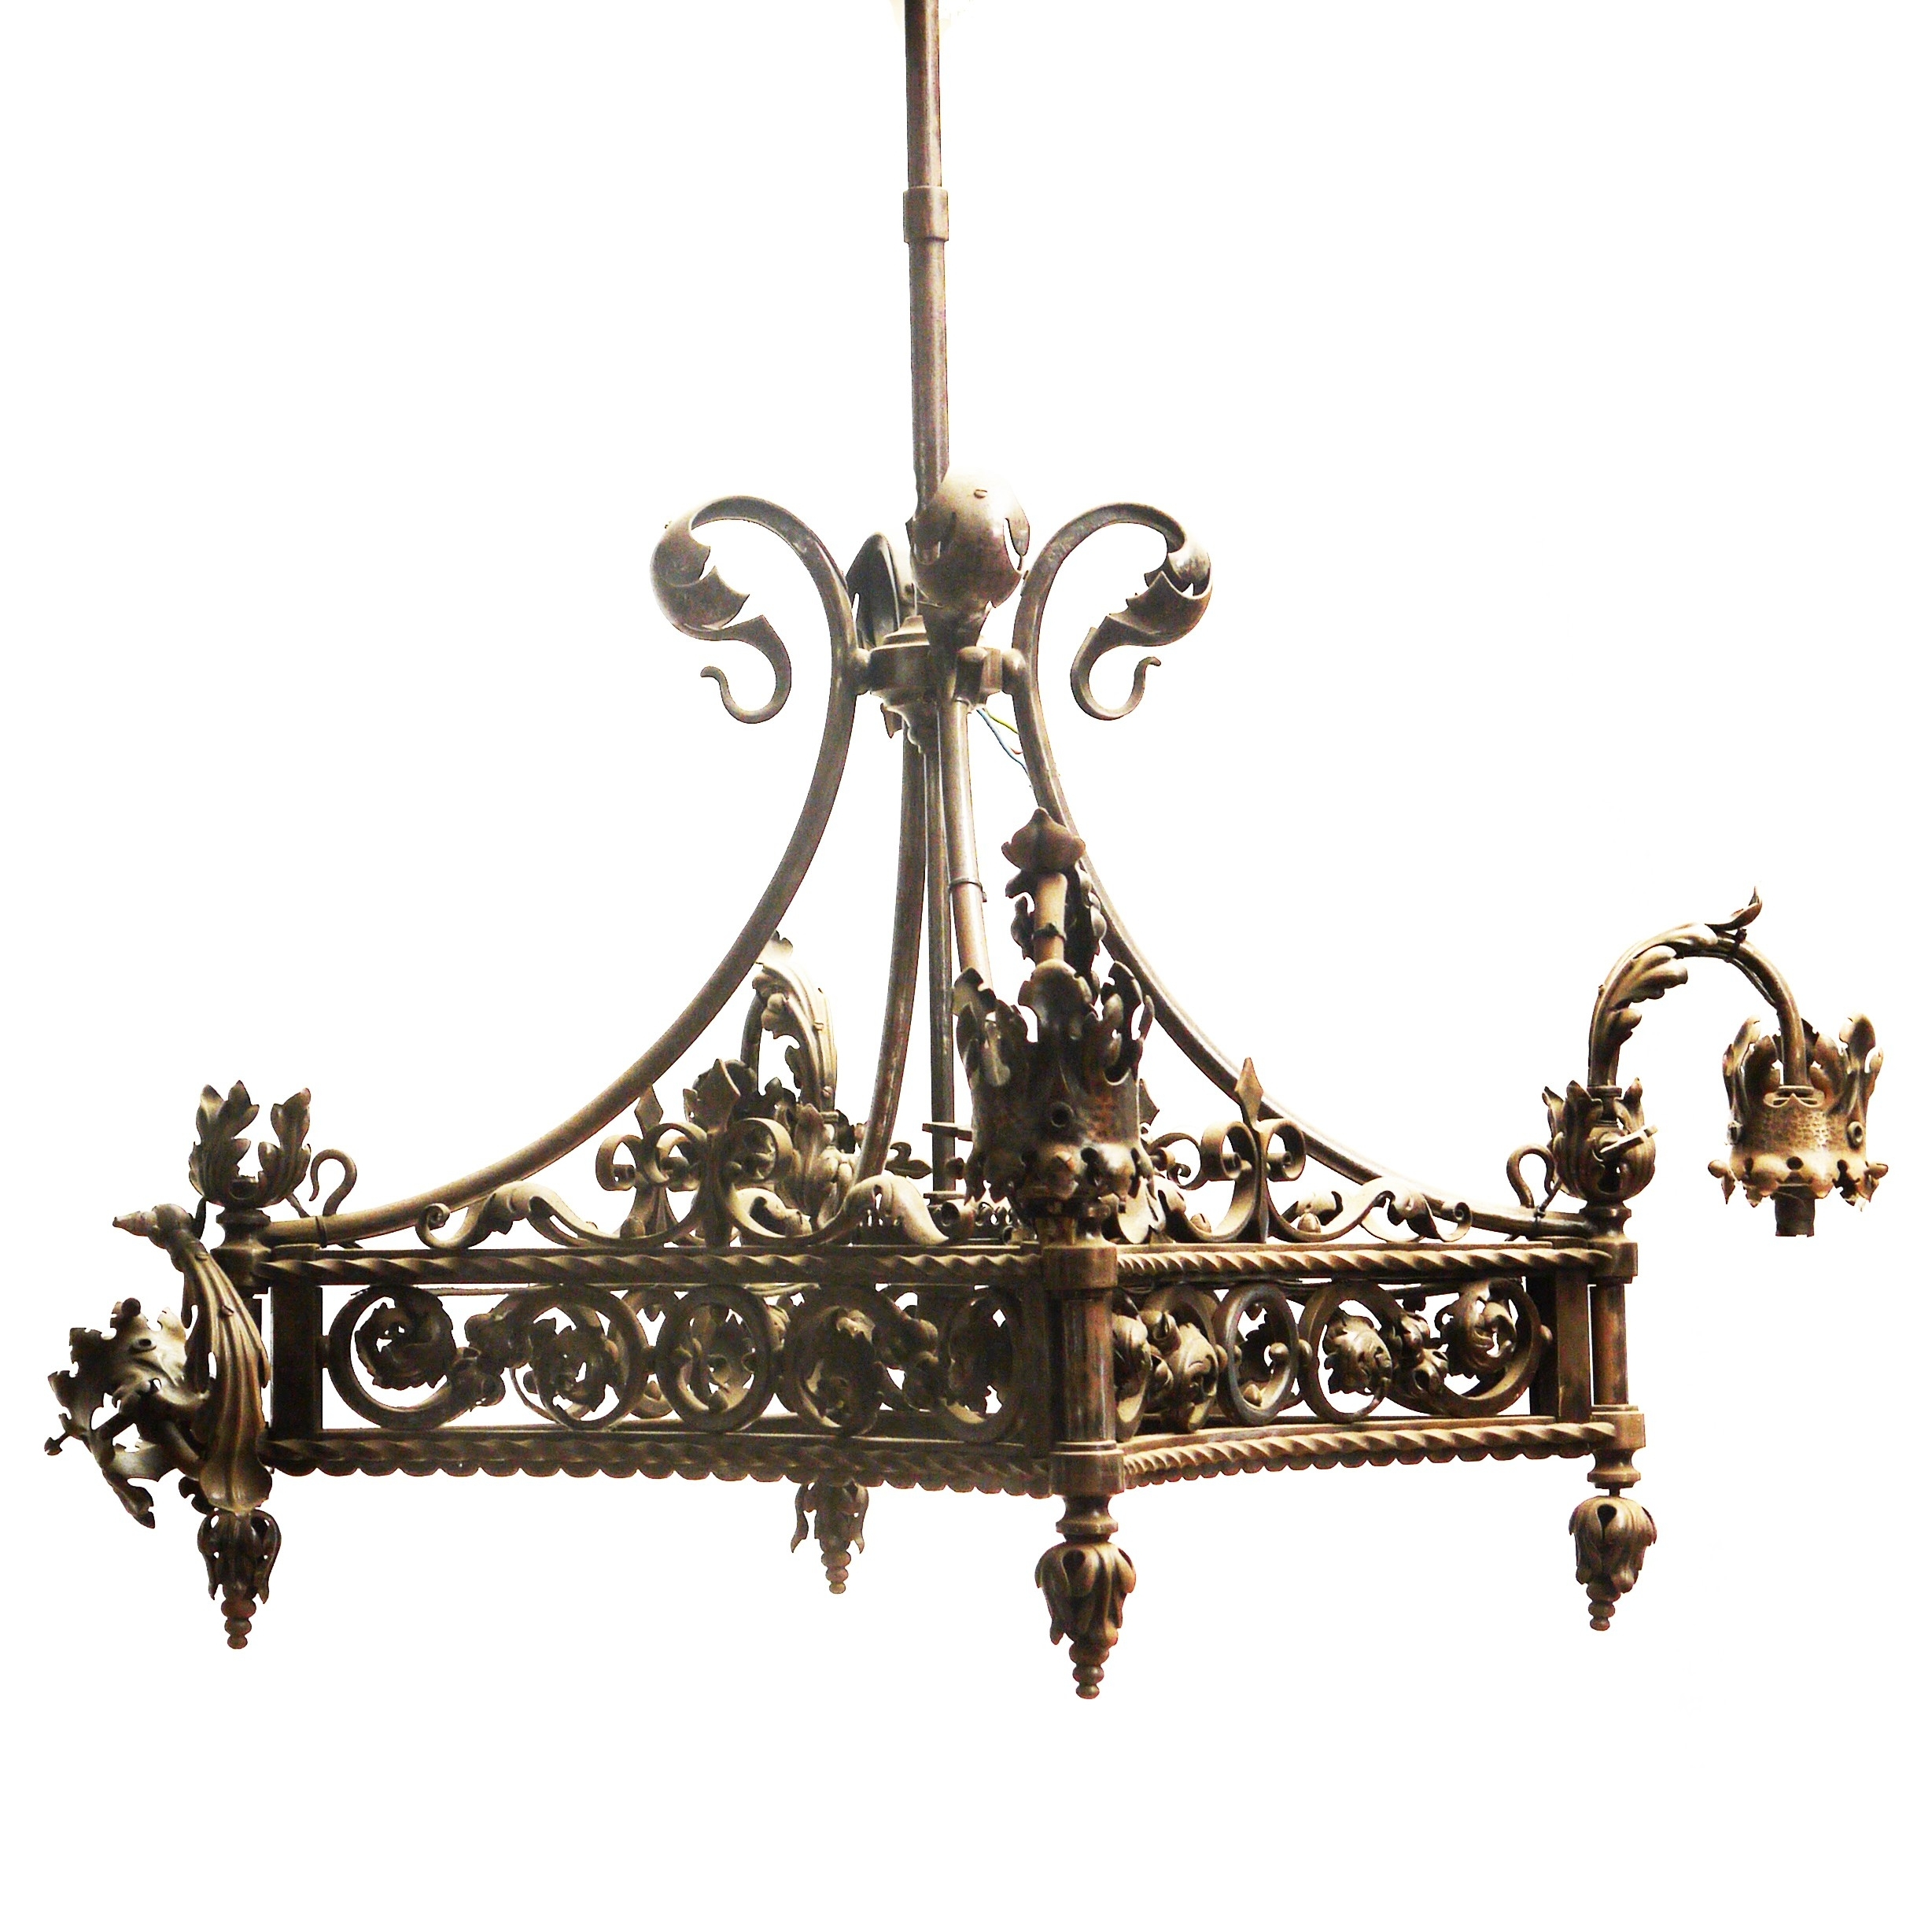 Best And Newest Home Design : Vintage Wrought Iron Chandelier Vintage Floral Wrought Pertaining To Vintage Wrought Iron Chandelier (View 2 of 20)